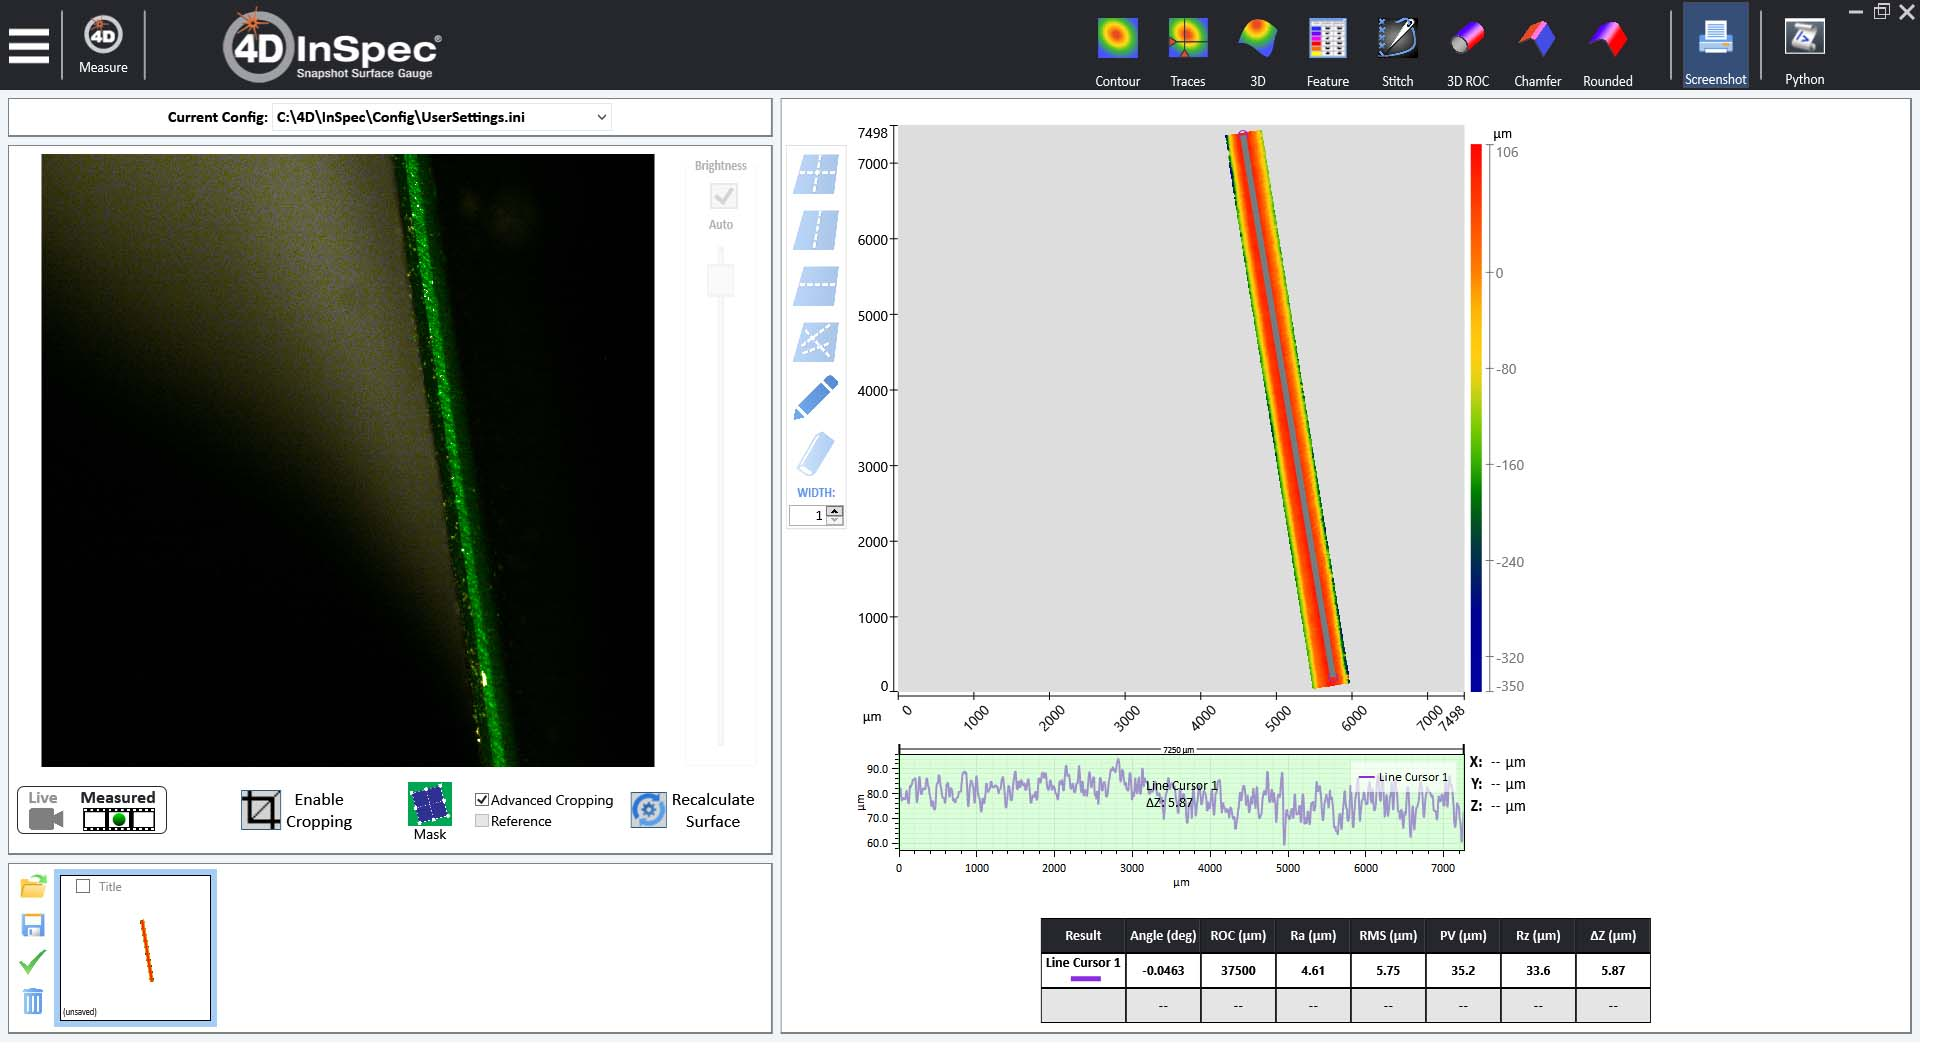 Cropped data calculates surface parameters based only on the data remaining.